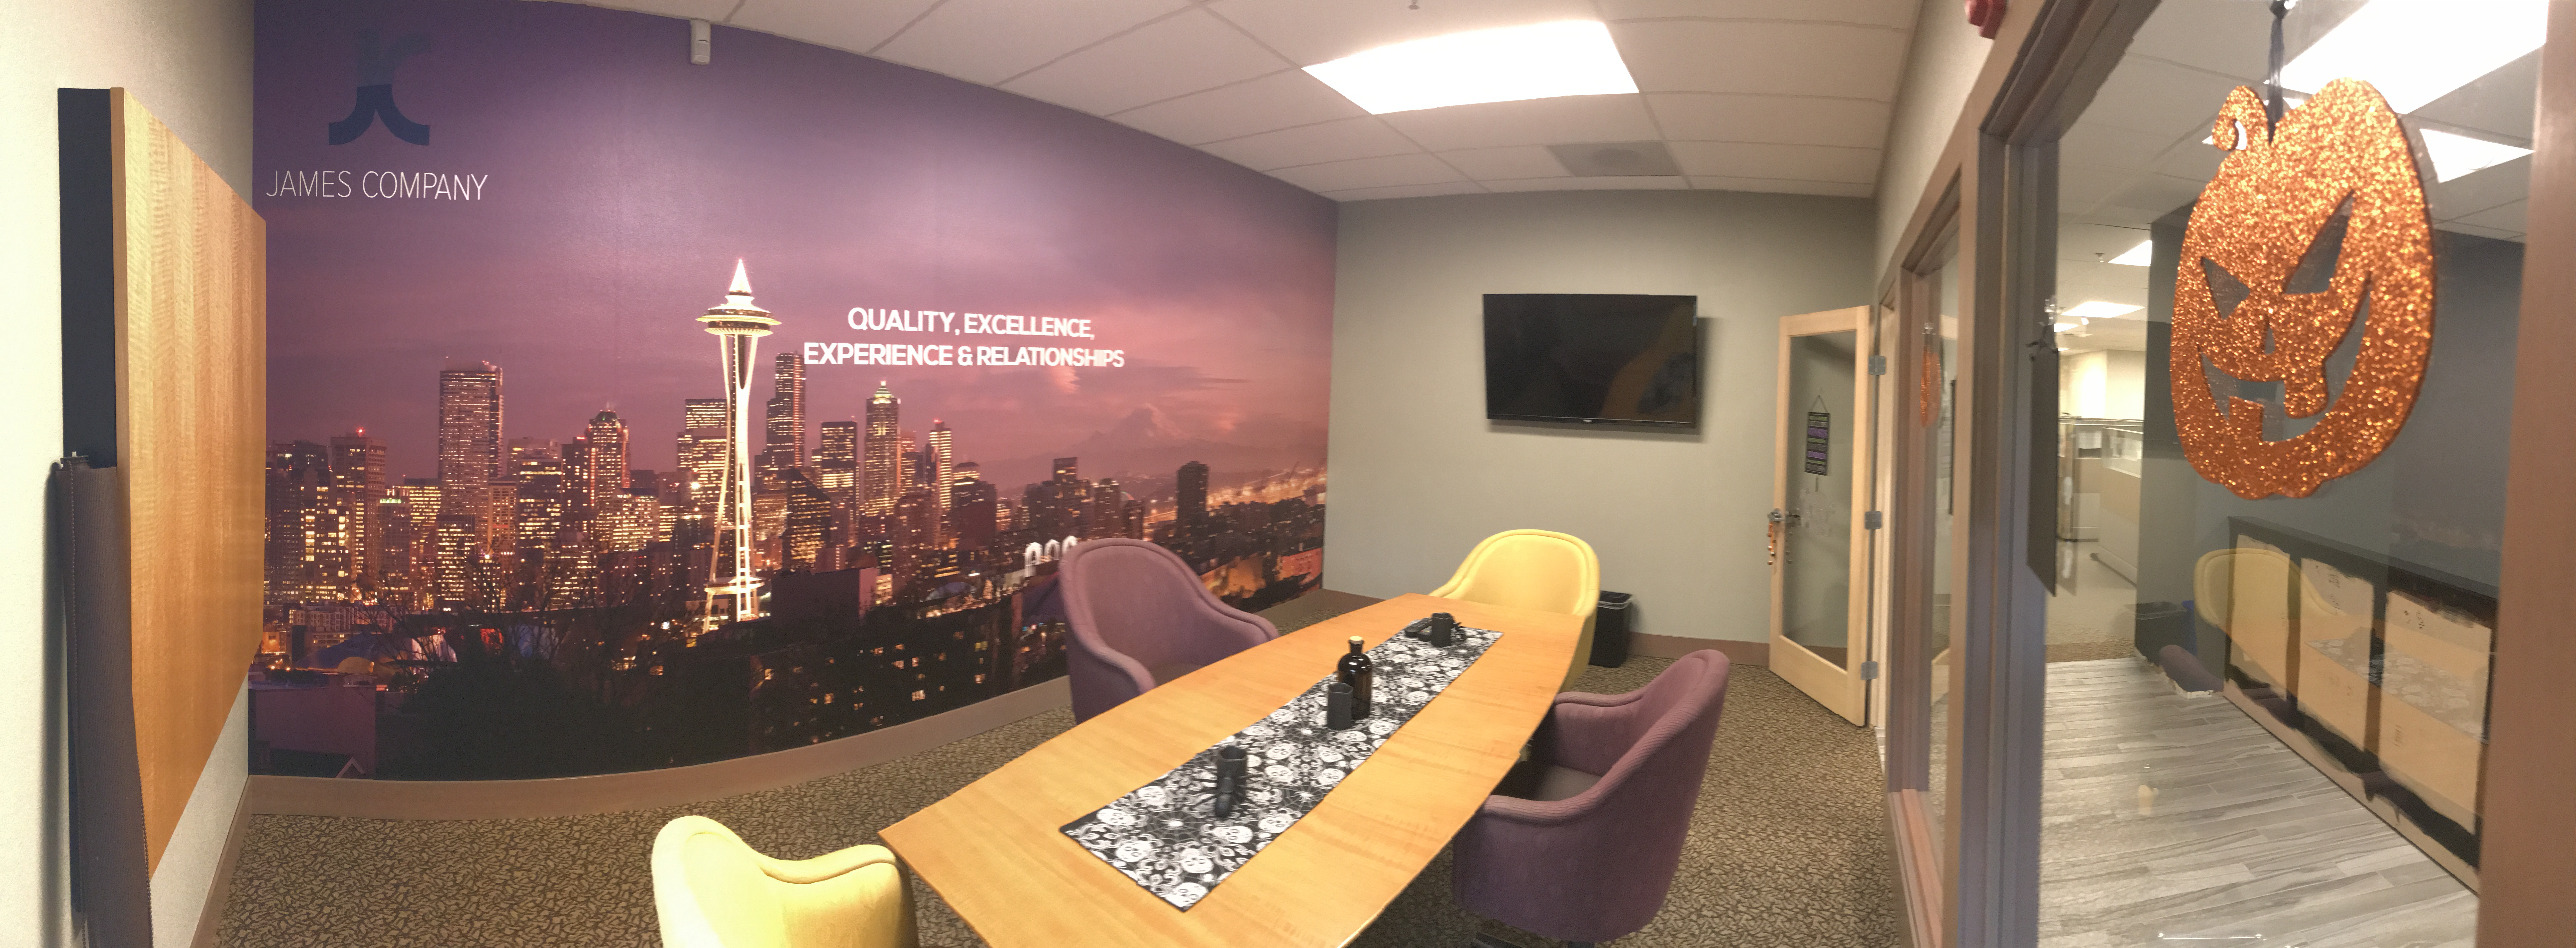 Ardor Printing Wall Wraps And Murals In Bellevue And Seattle